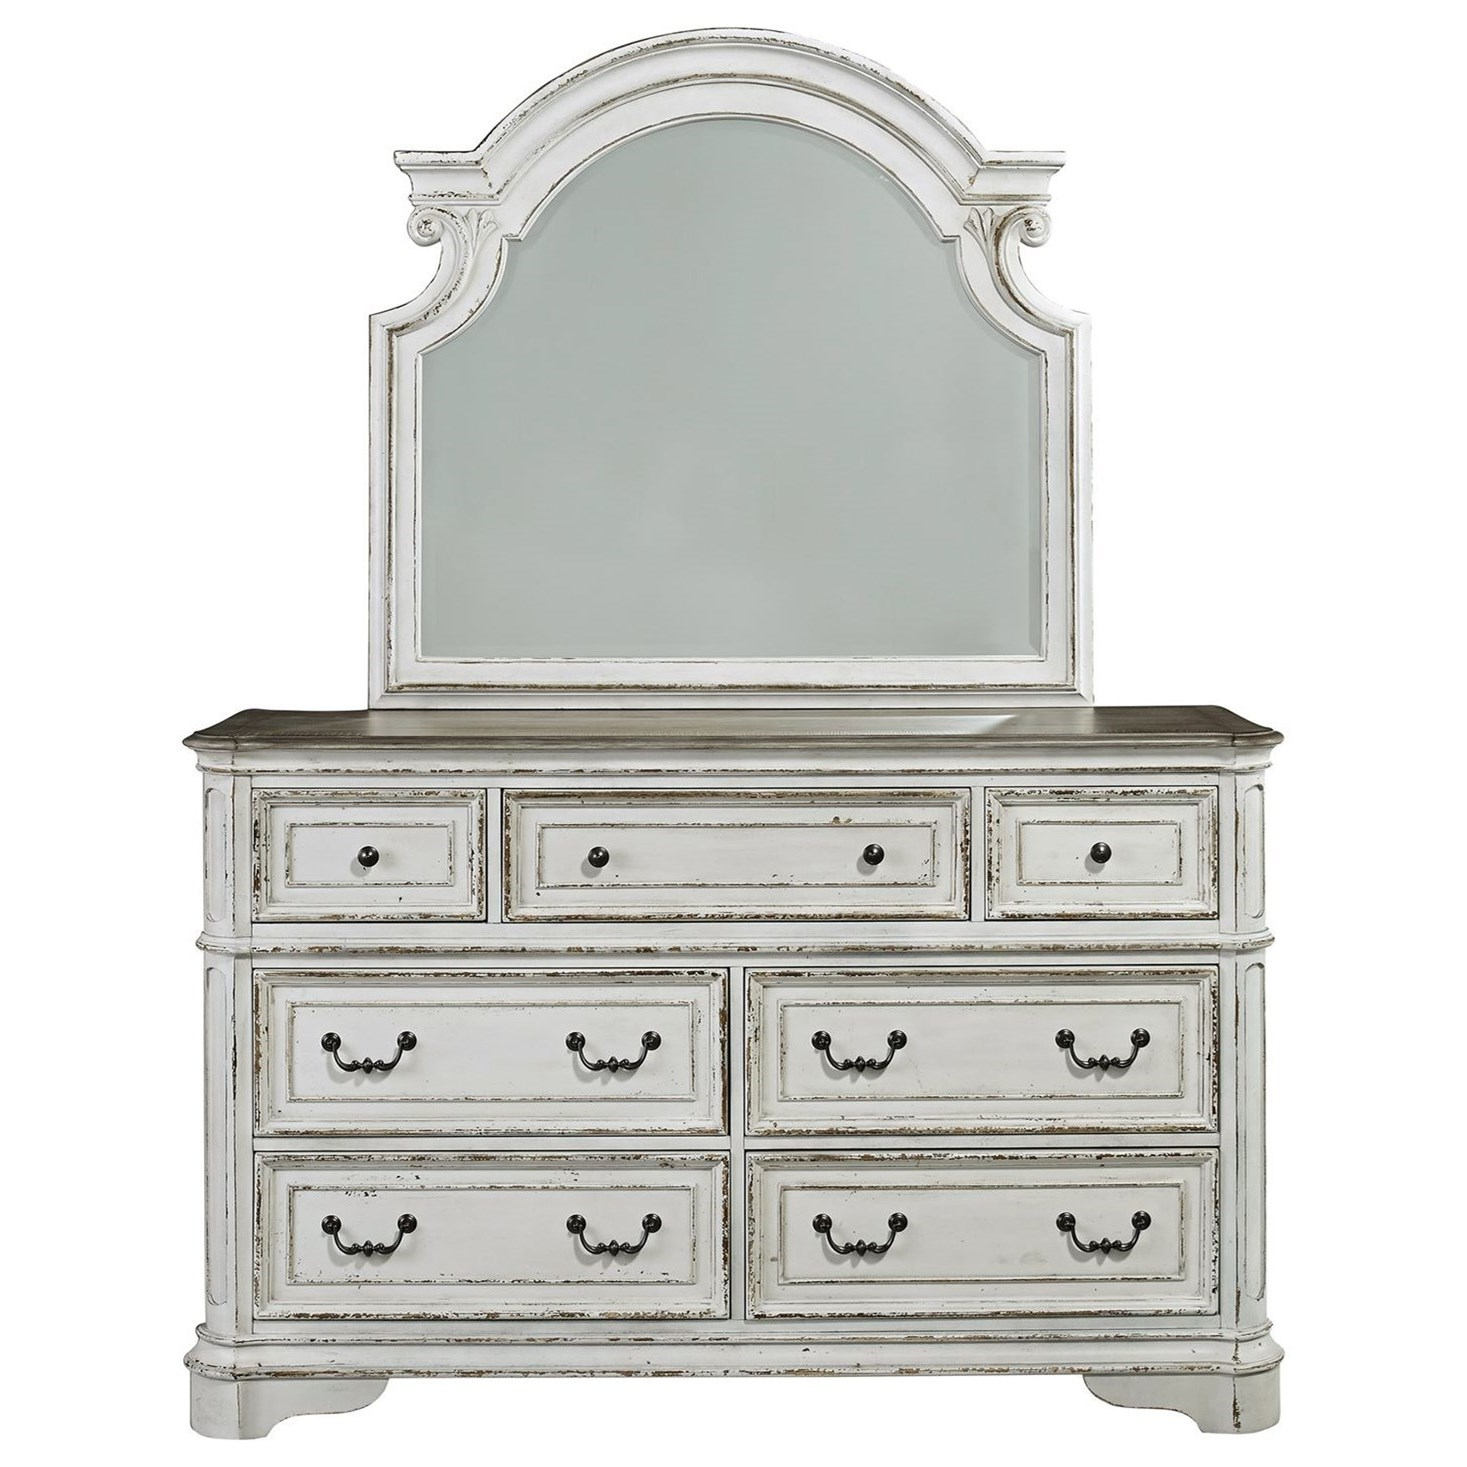 Magnolia Manor 7 Drawer Dresser and Mirror by Liberty Furniture at Darvin Furniture